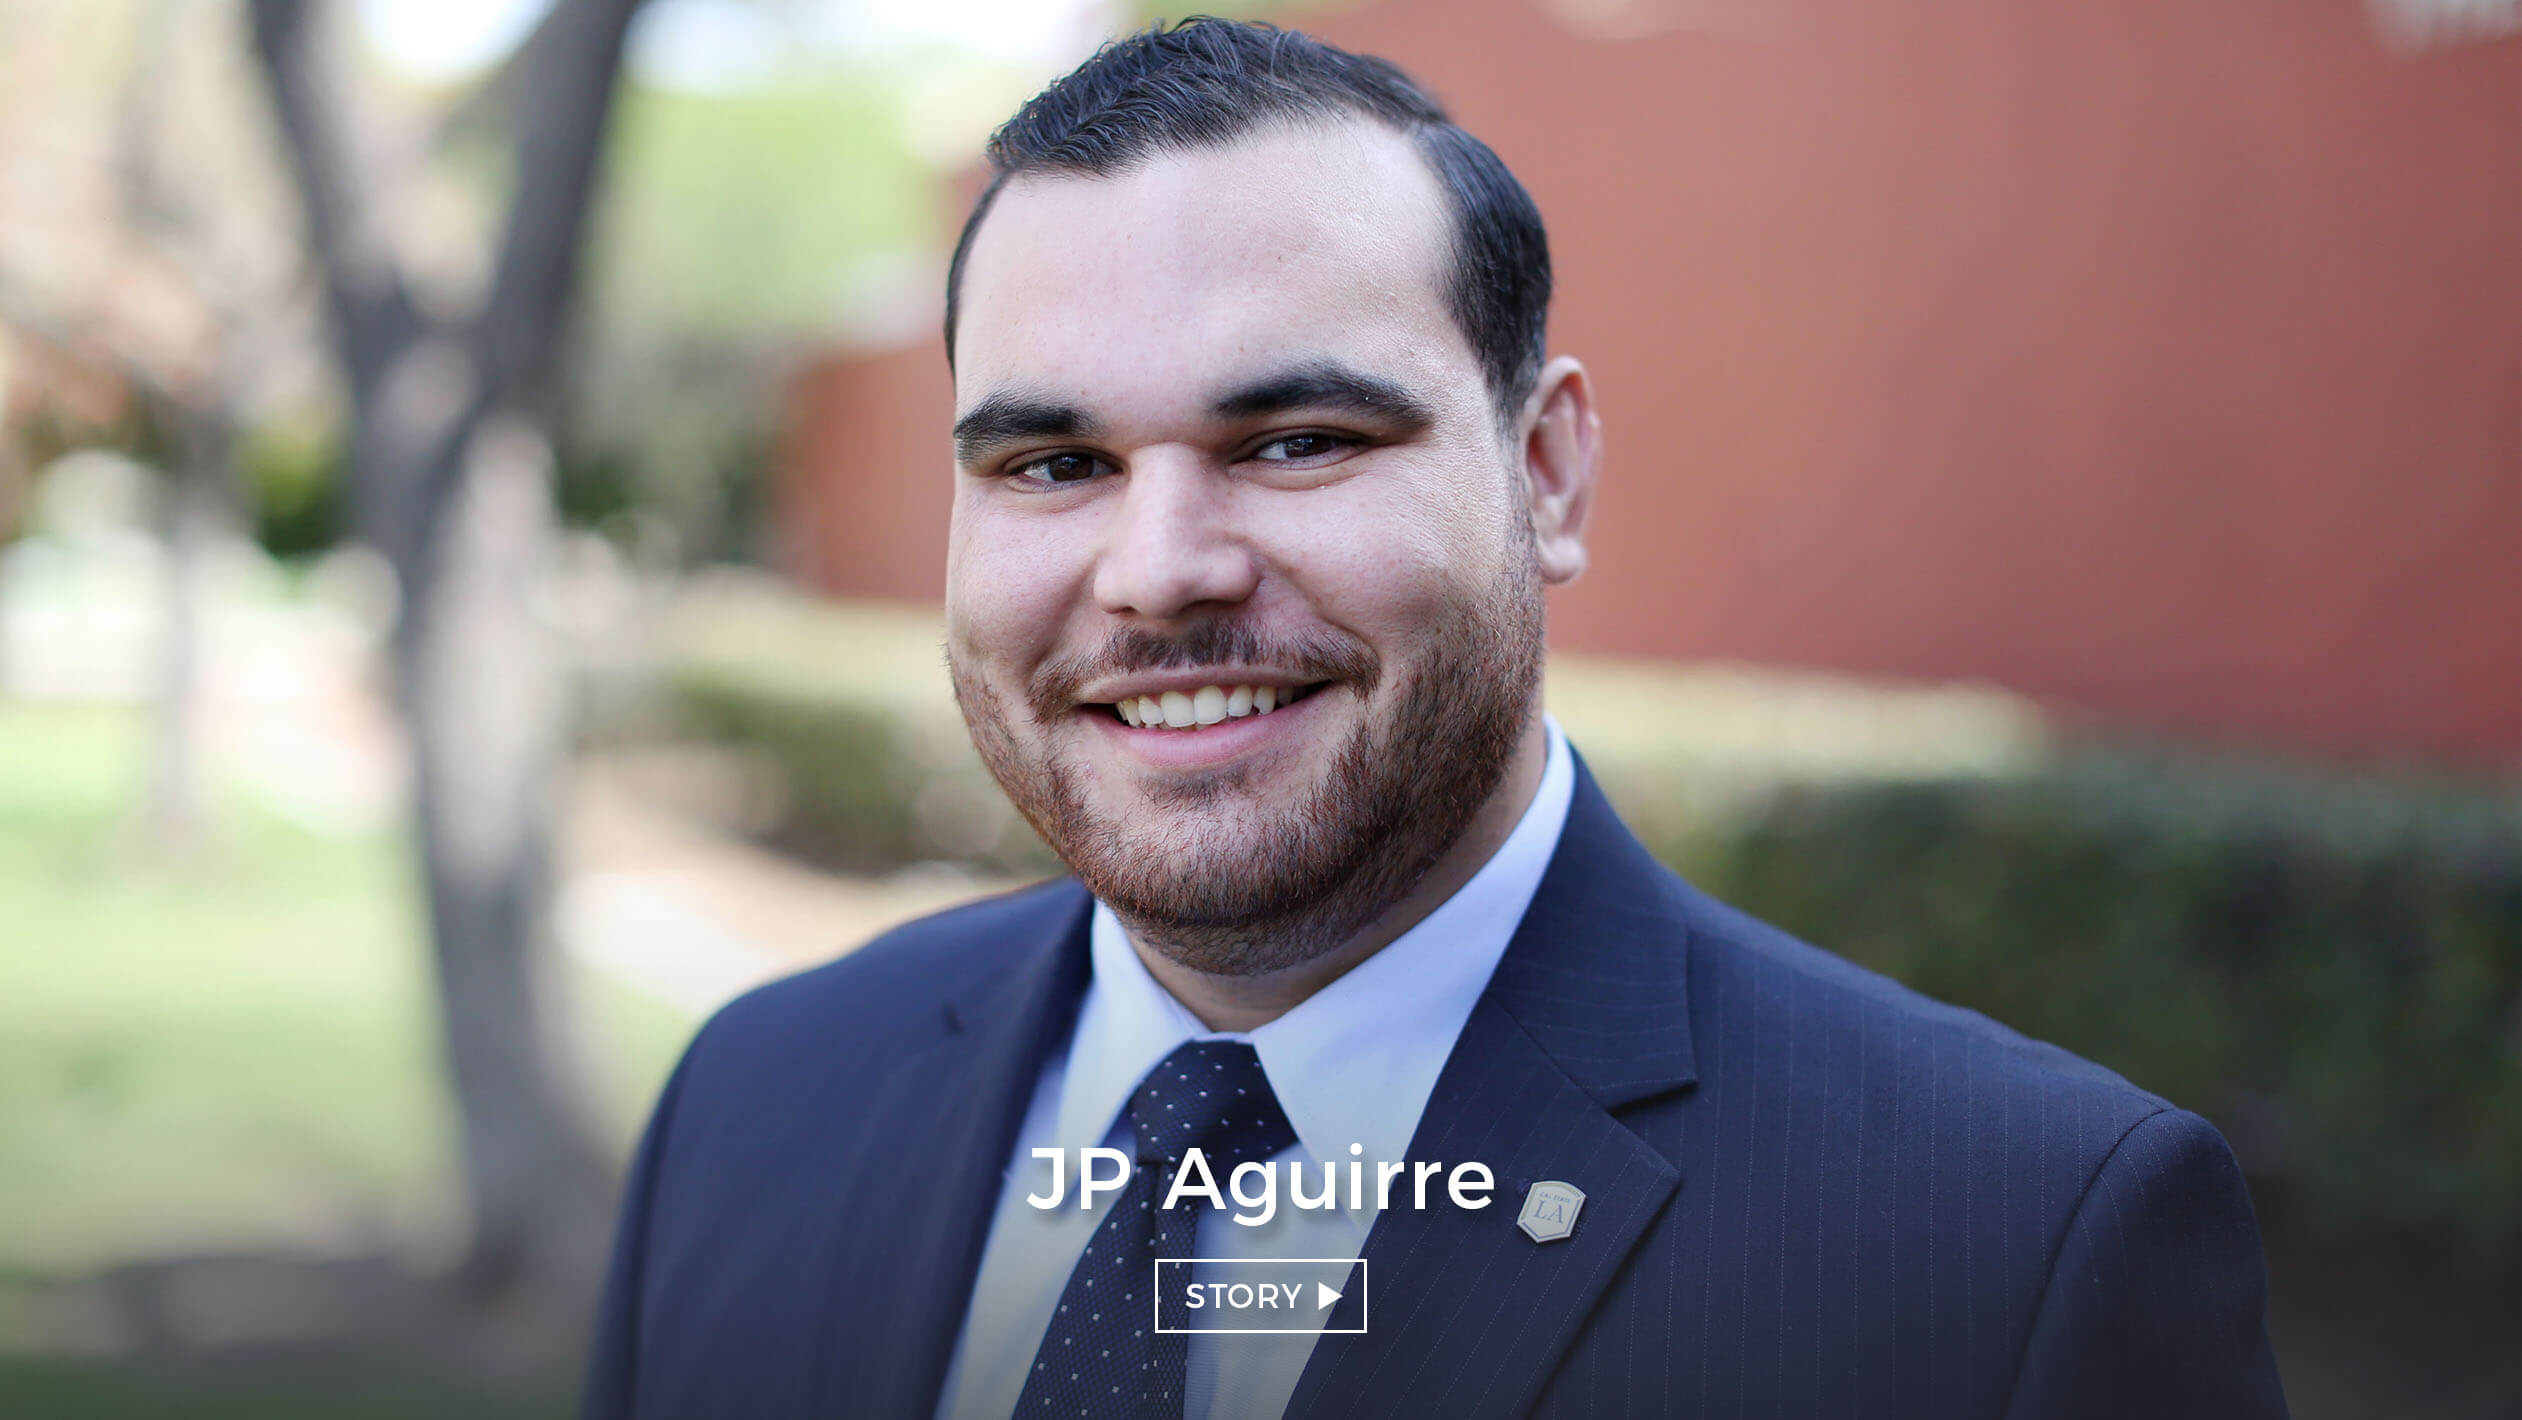 jp aguirre California State University Los Angeles